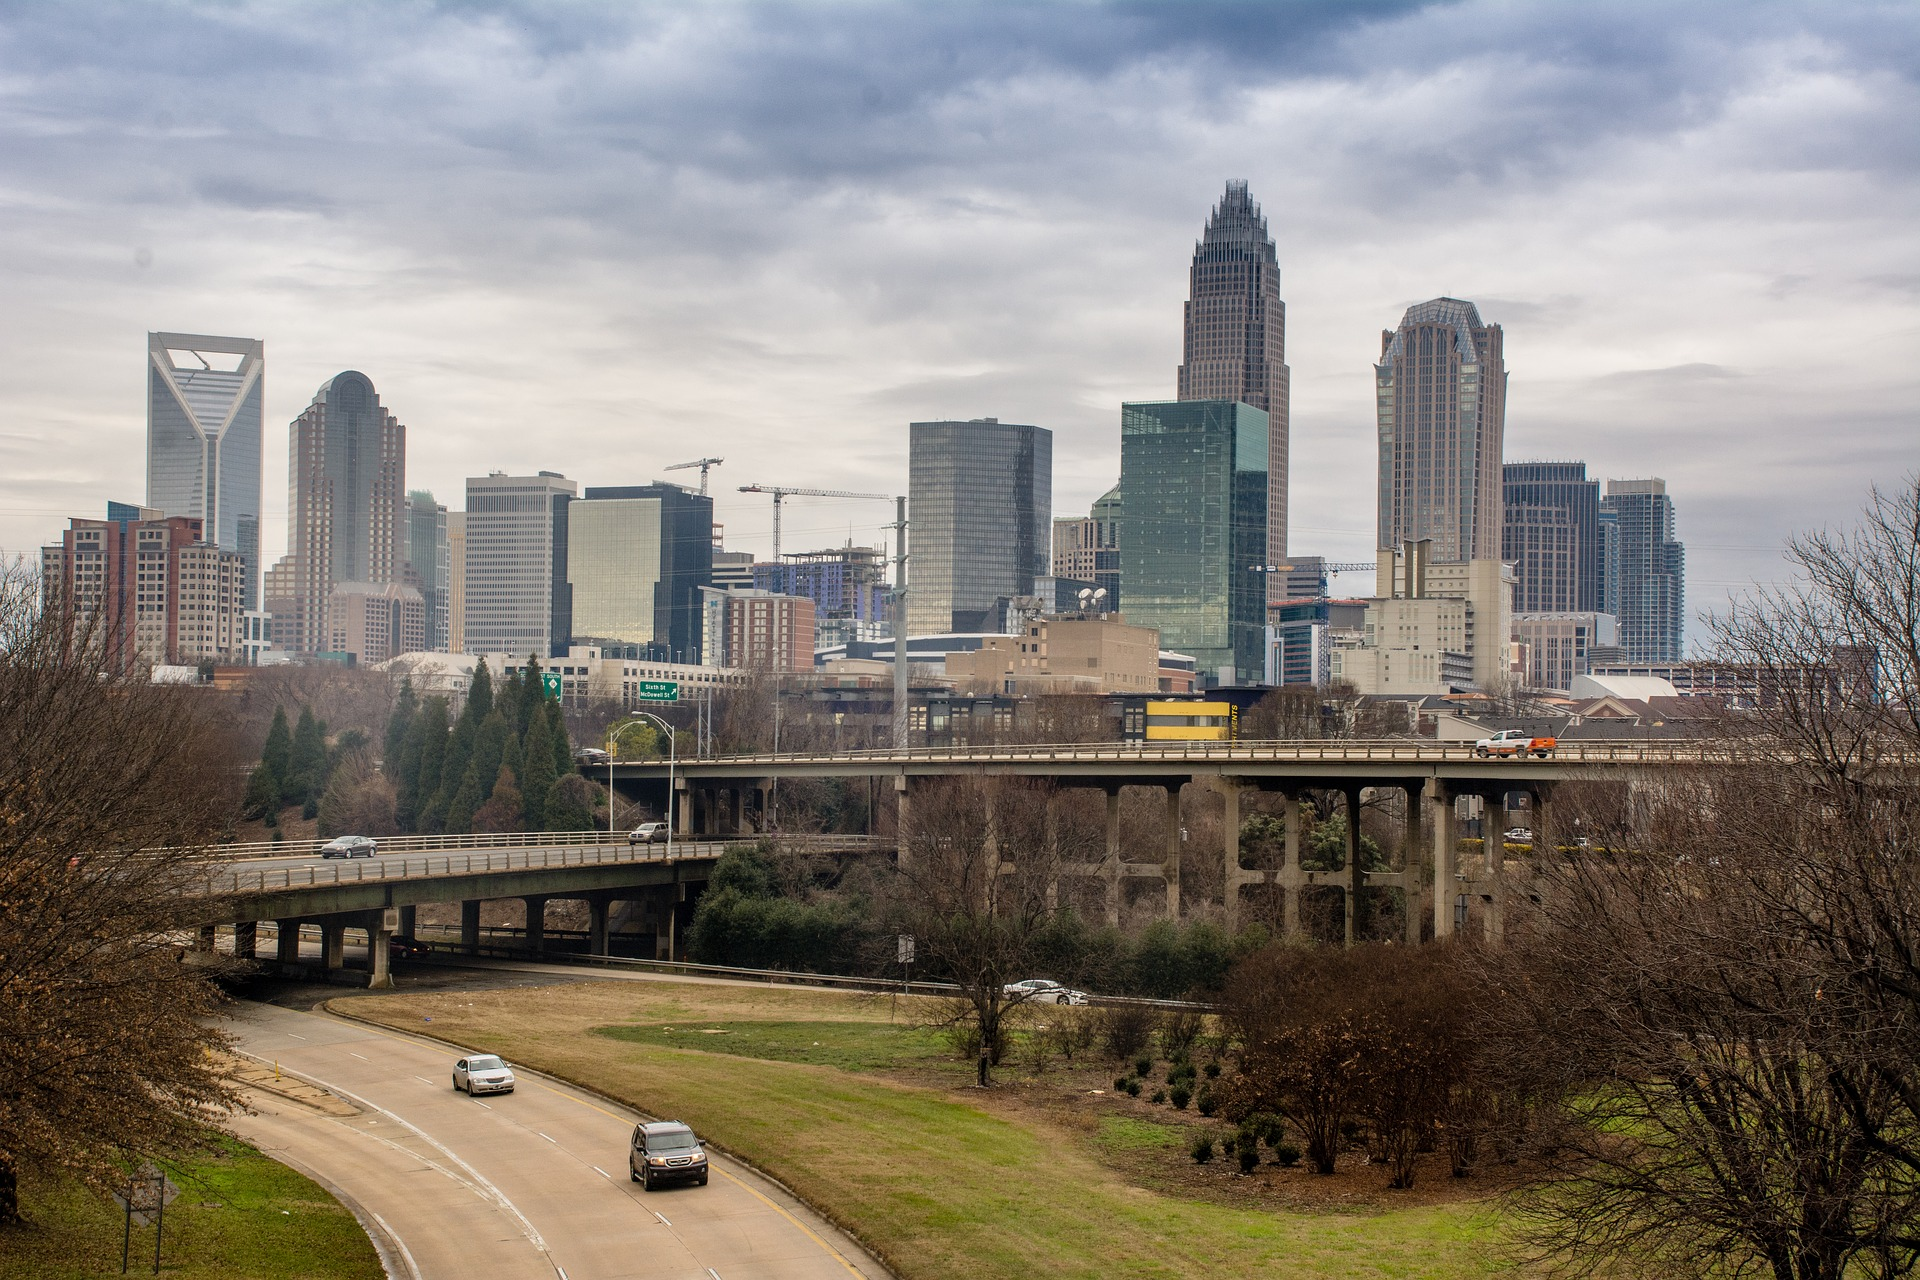 State of the City - Charlotte, NC